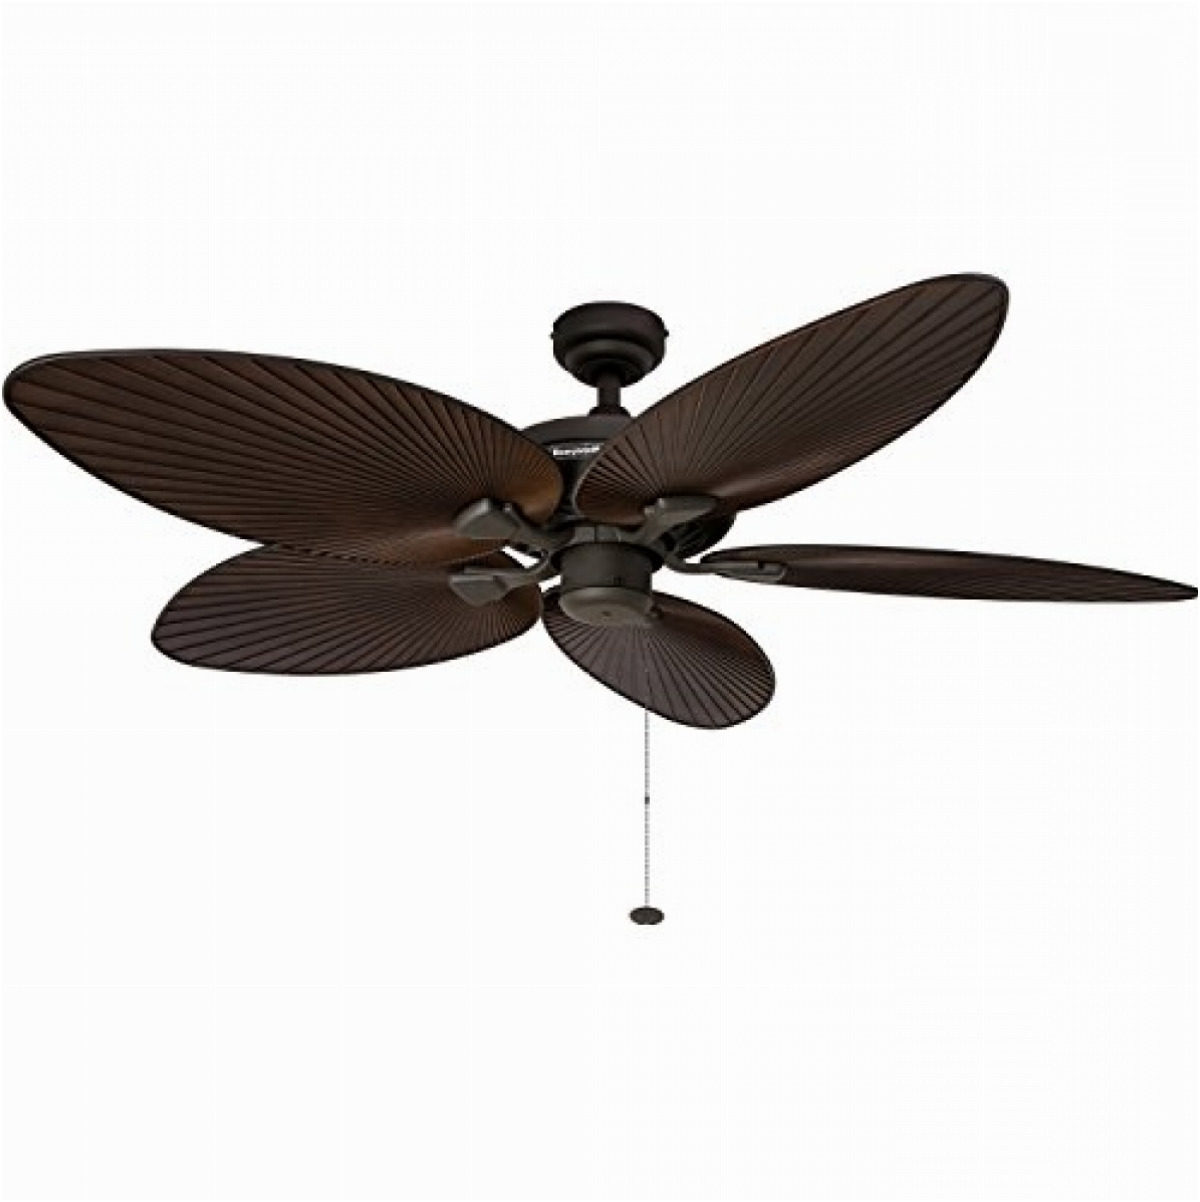 "Leaf Blades Outdoor Ceiling Fans Pertaining To Well Known 52"" Tropical Ceiling Fan Five Palm Leaf Blades Indoor/outdoor Damp (View 12 of 20)"